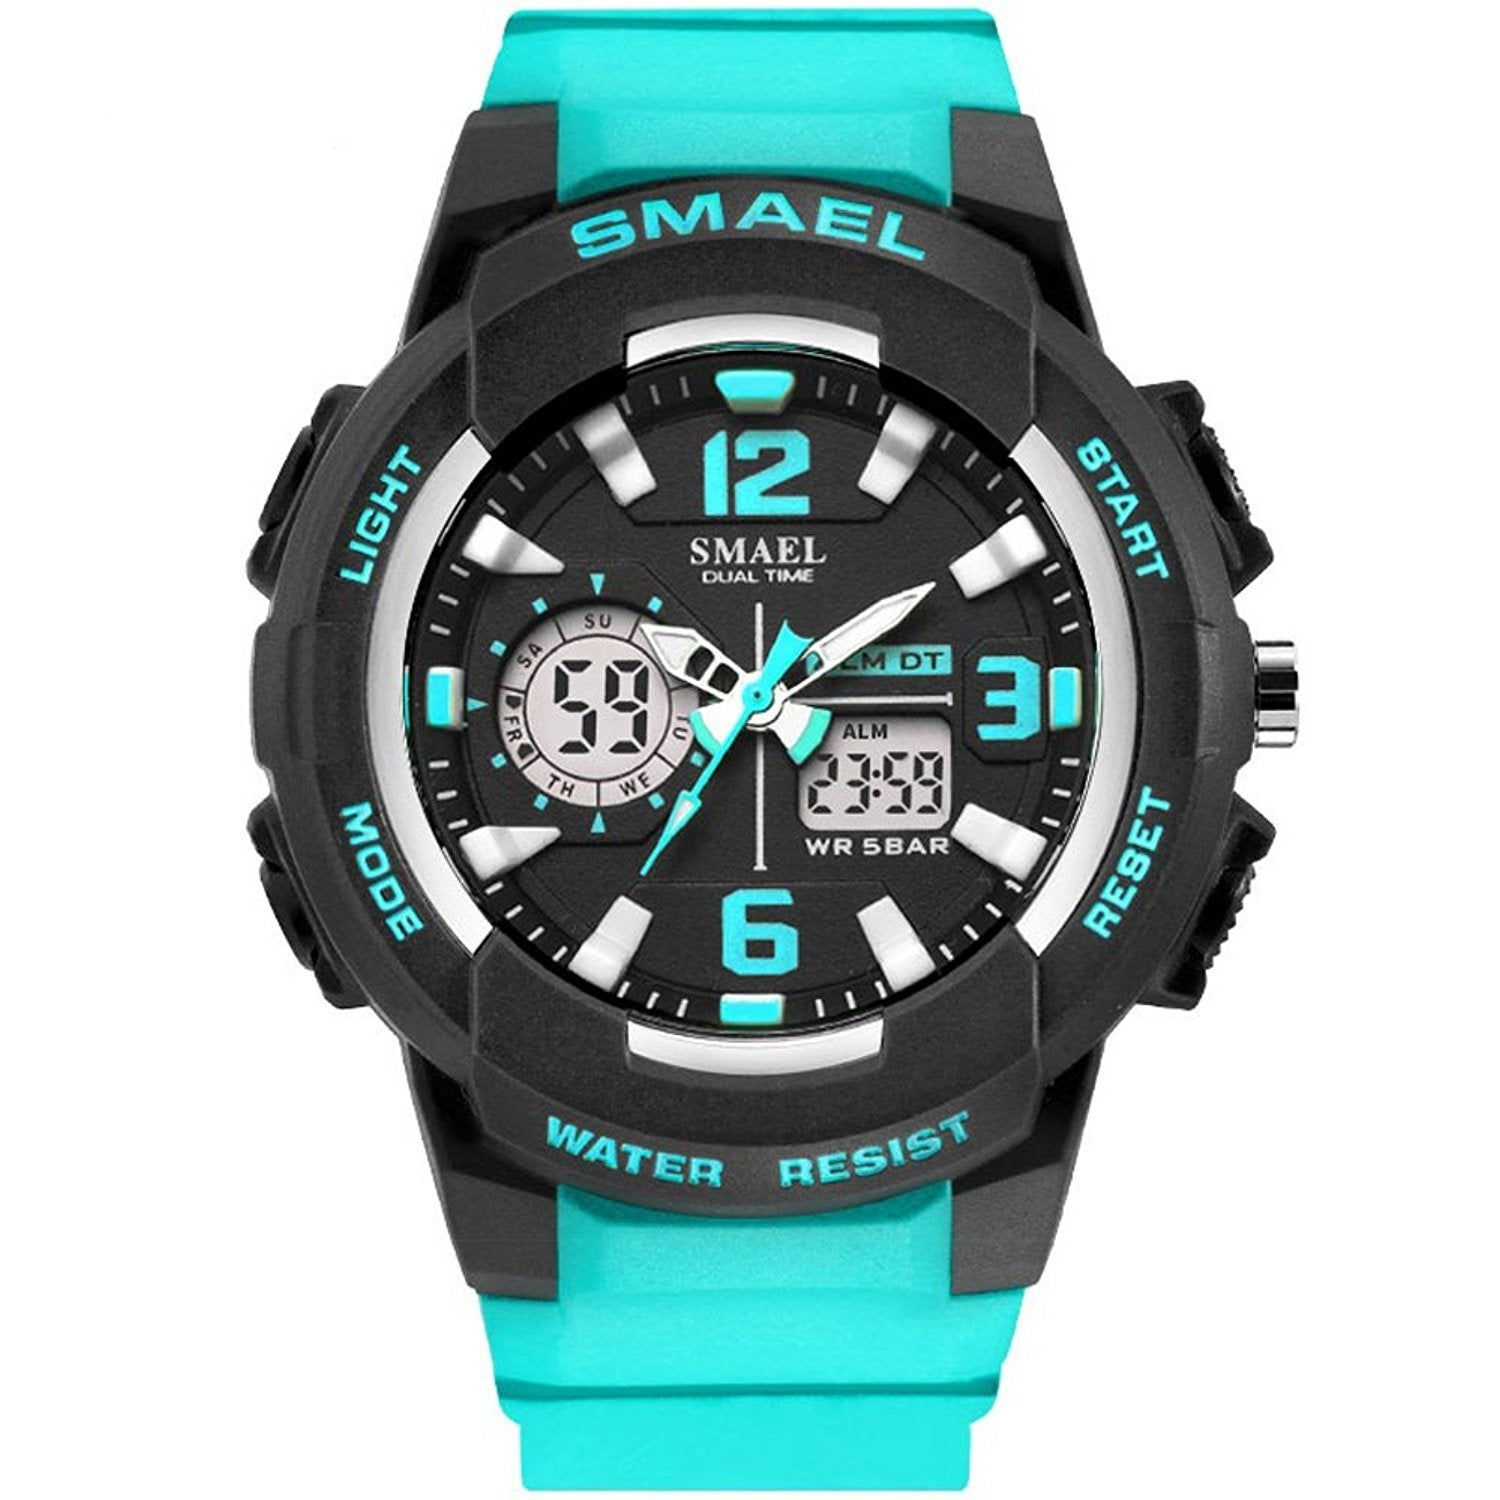 products us pdpzoom stain watches analog en stainless steel aemresponsive digital watch main black sku nate fossil